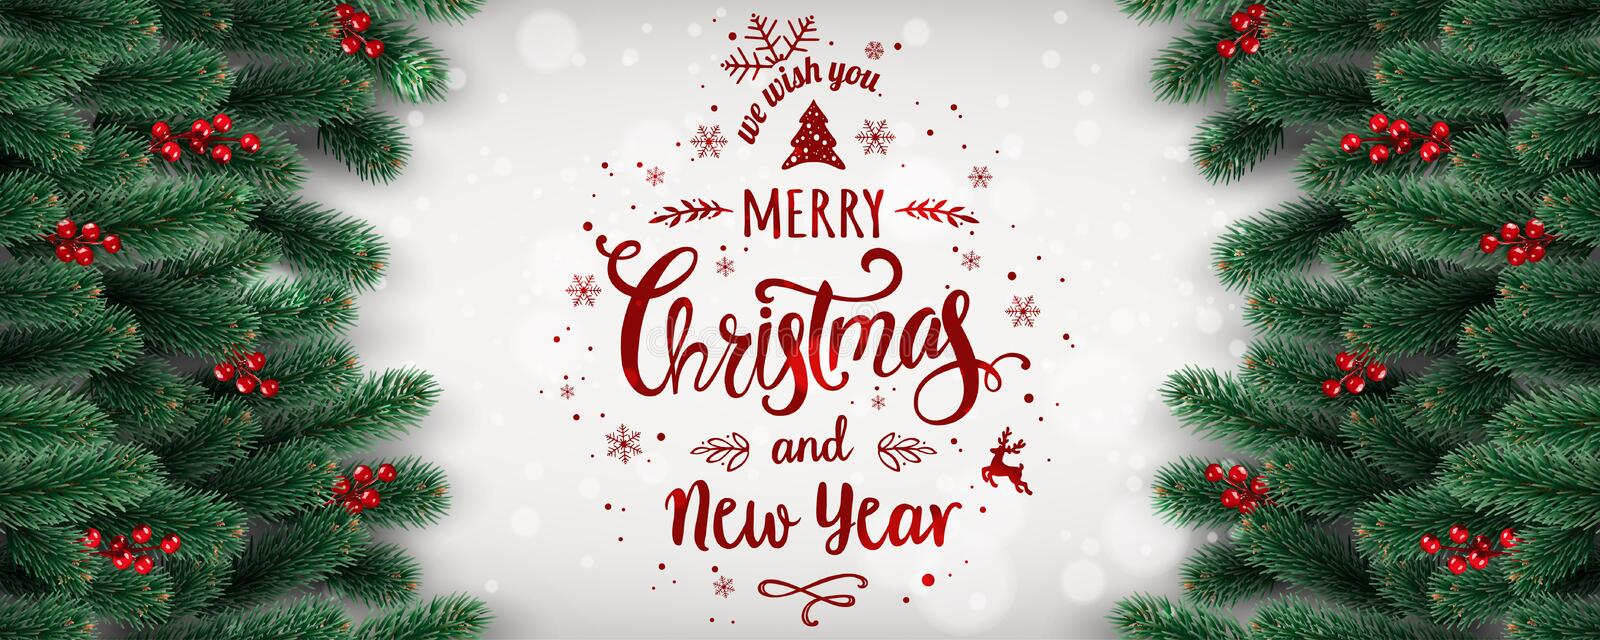 Merry Christmas and New Year Typographical on white background with fir branches, berries, lights, snowflakes. Xmas theme. Vector Illustration royalty free illustration